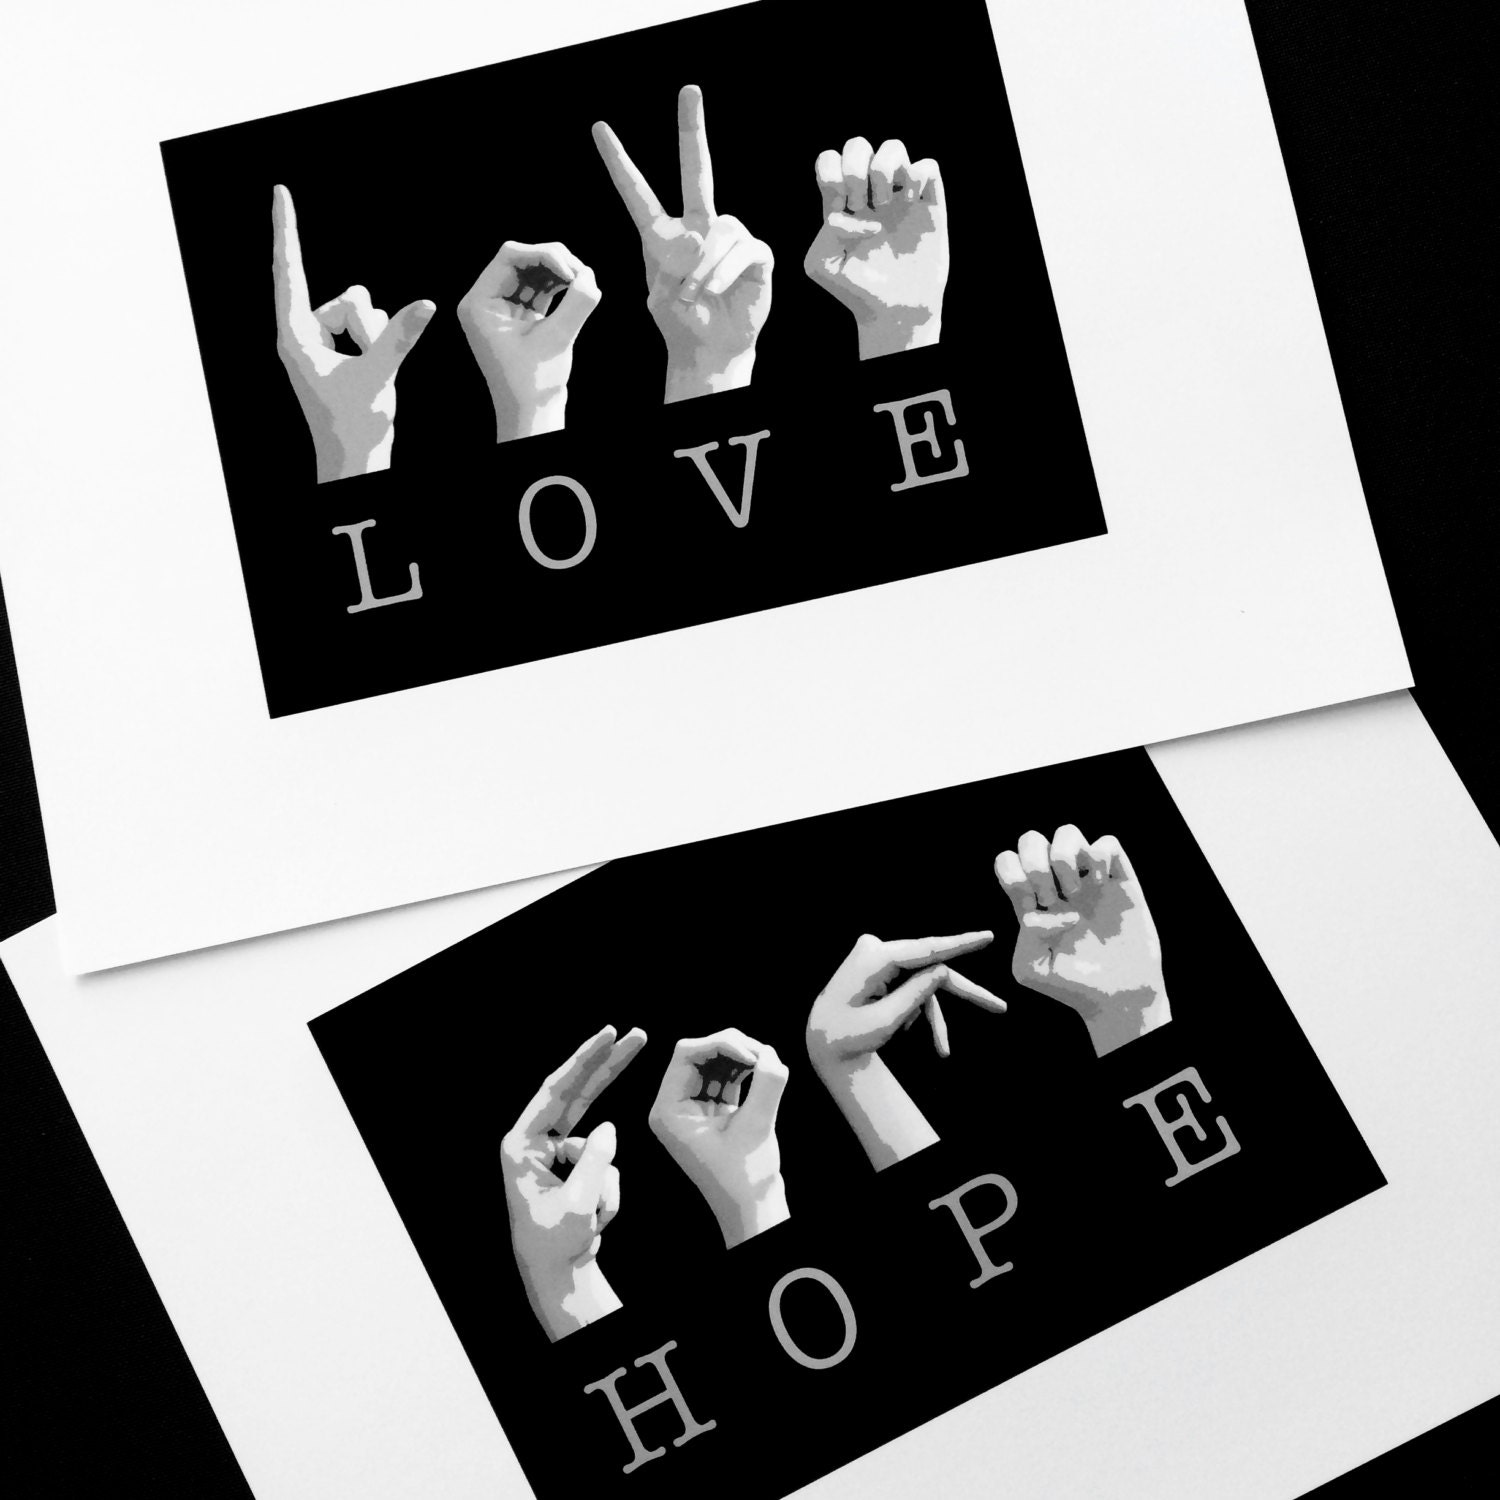 HOPE and LOVE ASL American Sign Language Letters Black & White